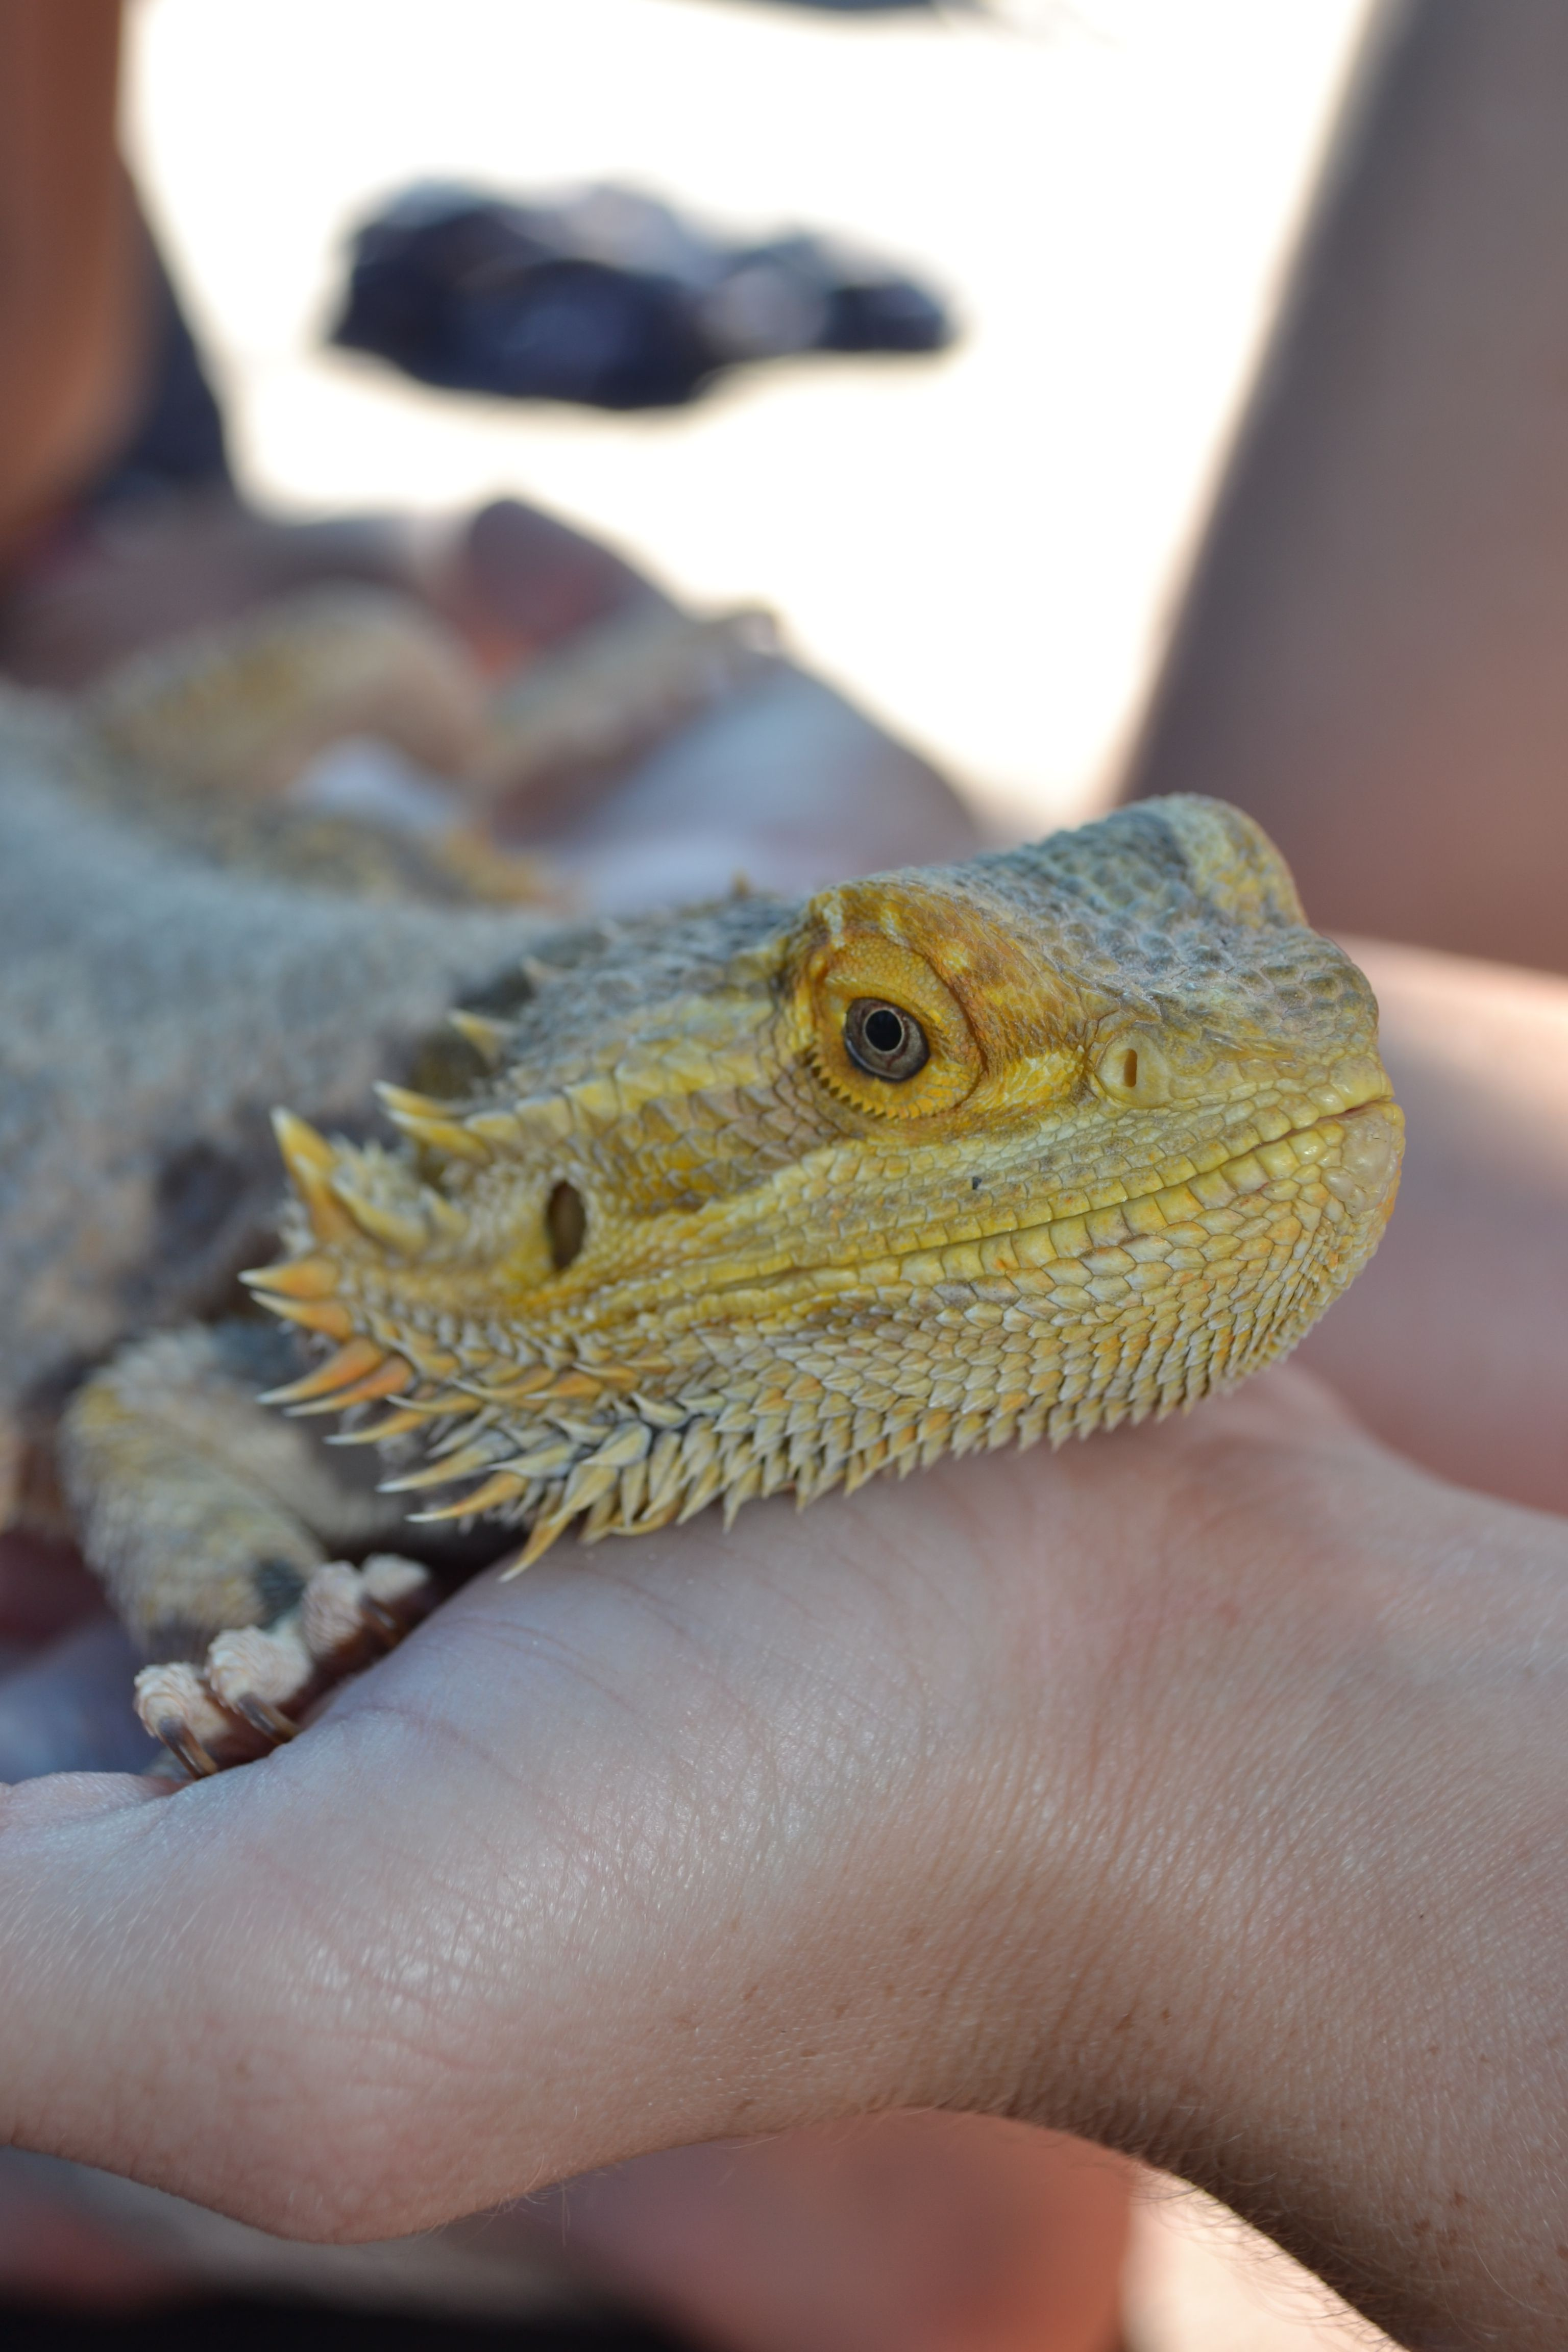 Reptile Show With Images